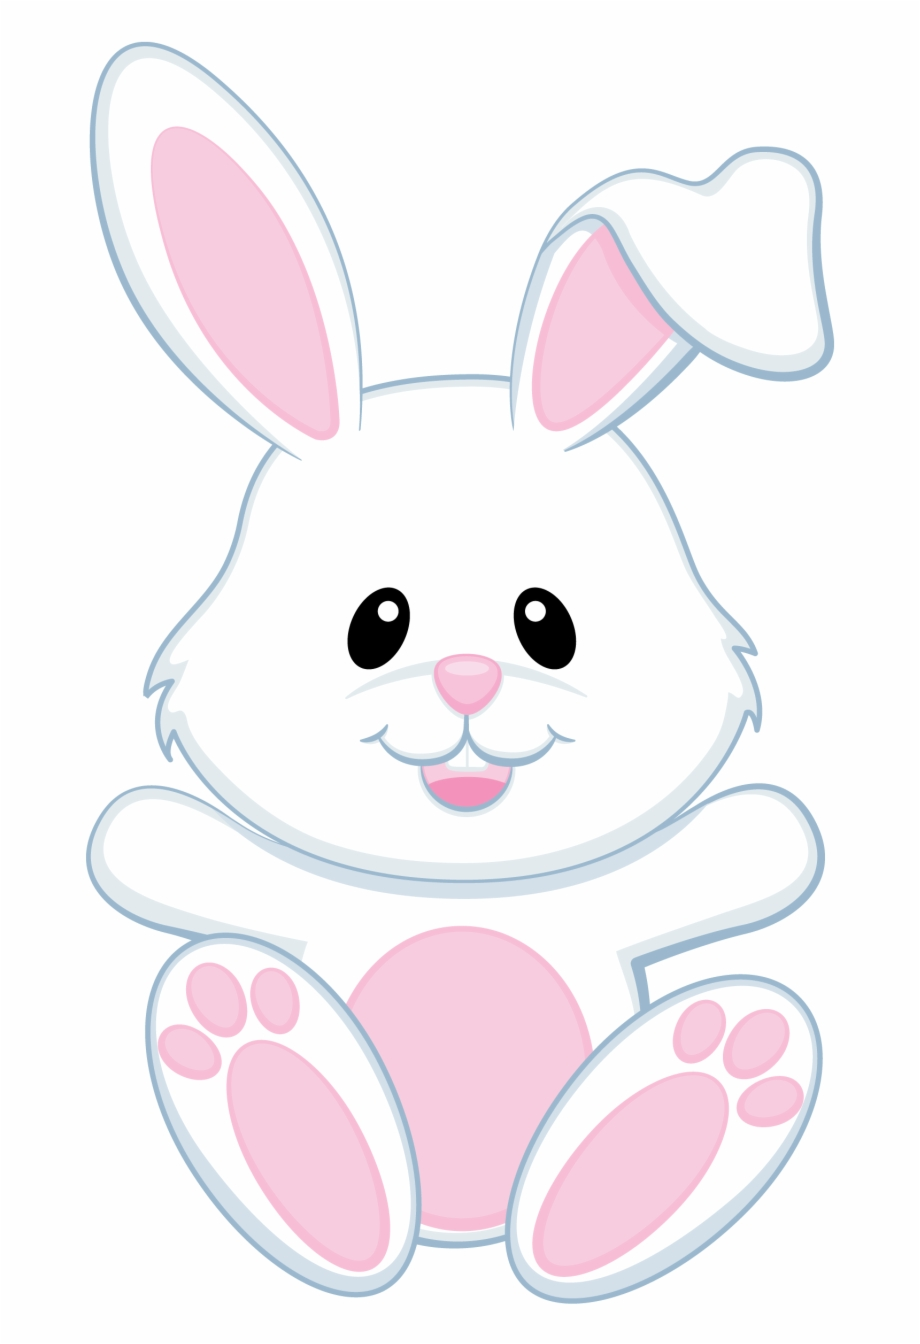 Bunny clipart png clip art freeuse library Bunnies Clipart Modern - Transparent Background Easter Bunny Clipart ... clip art freeuse library